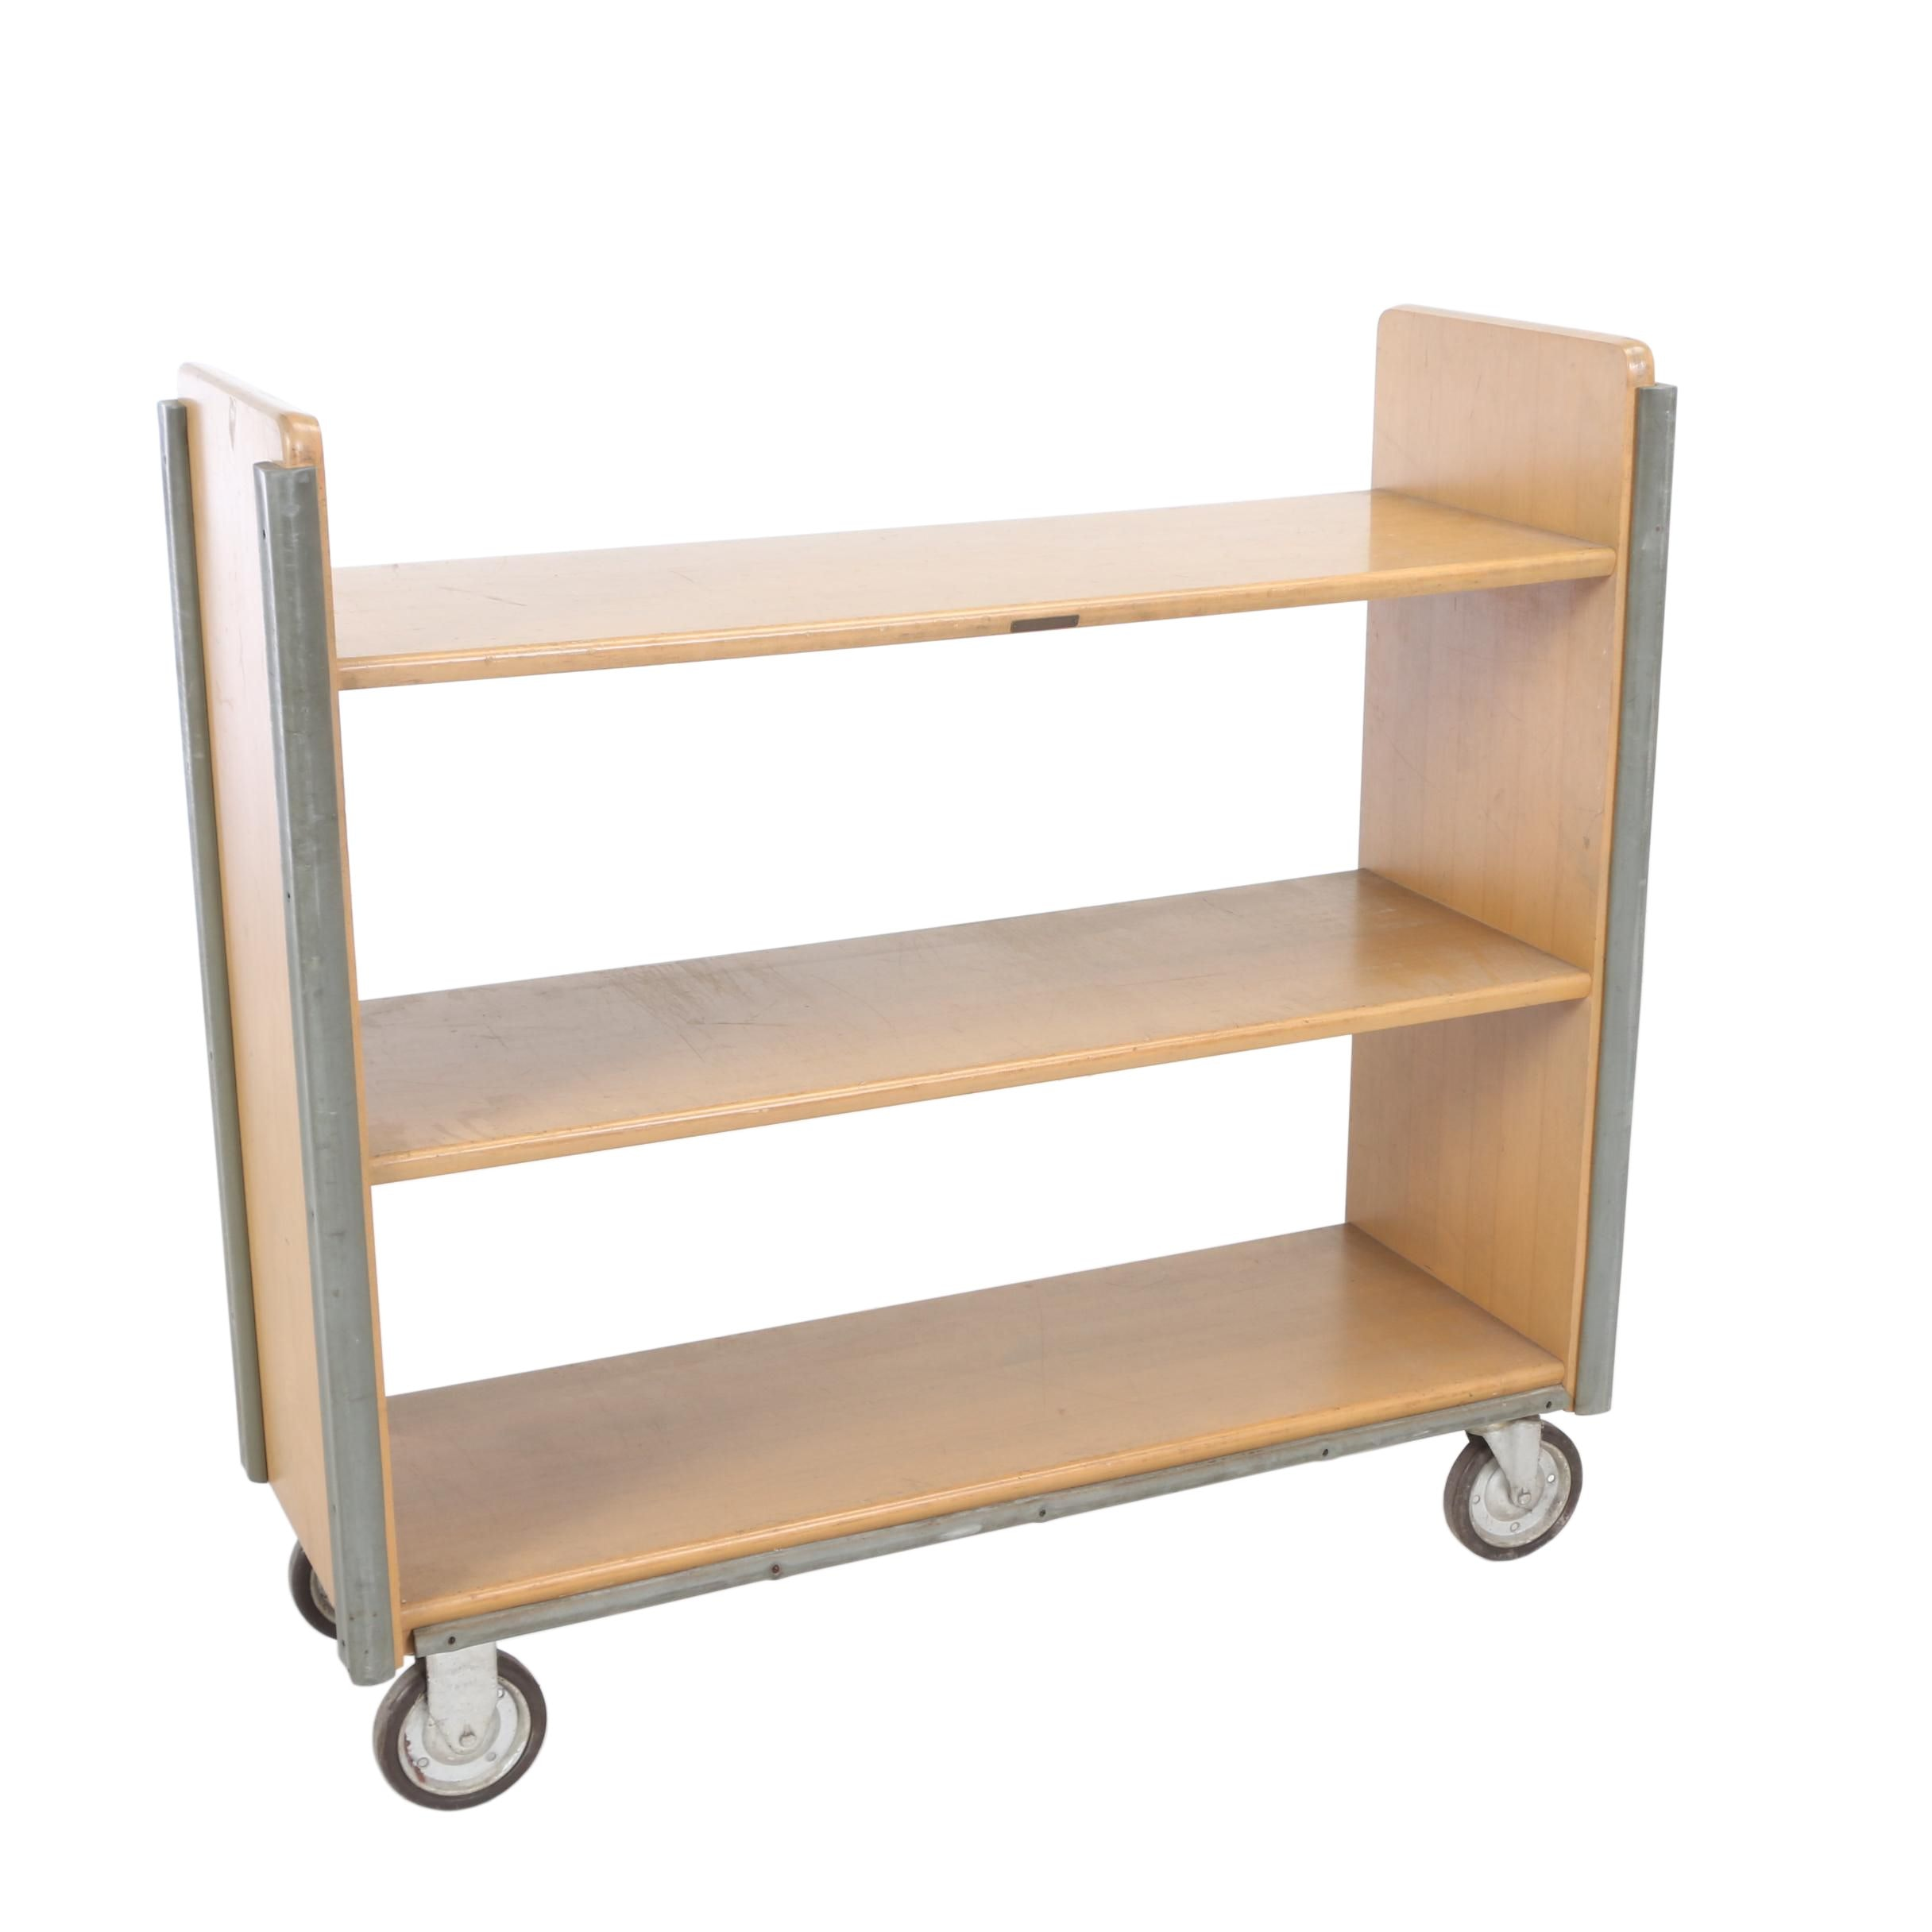 Three-Tier Library Book Cart by Standard Wood Products Corp., Mid 20th Century